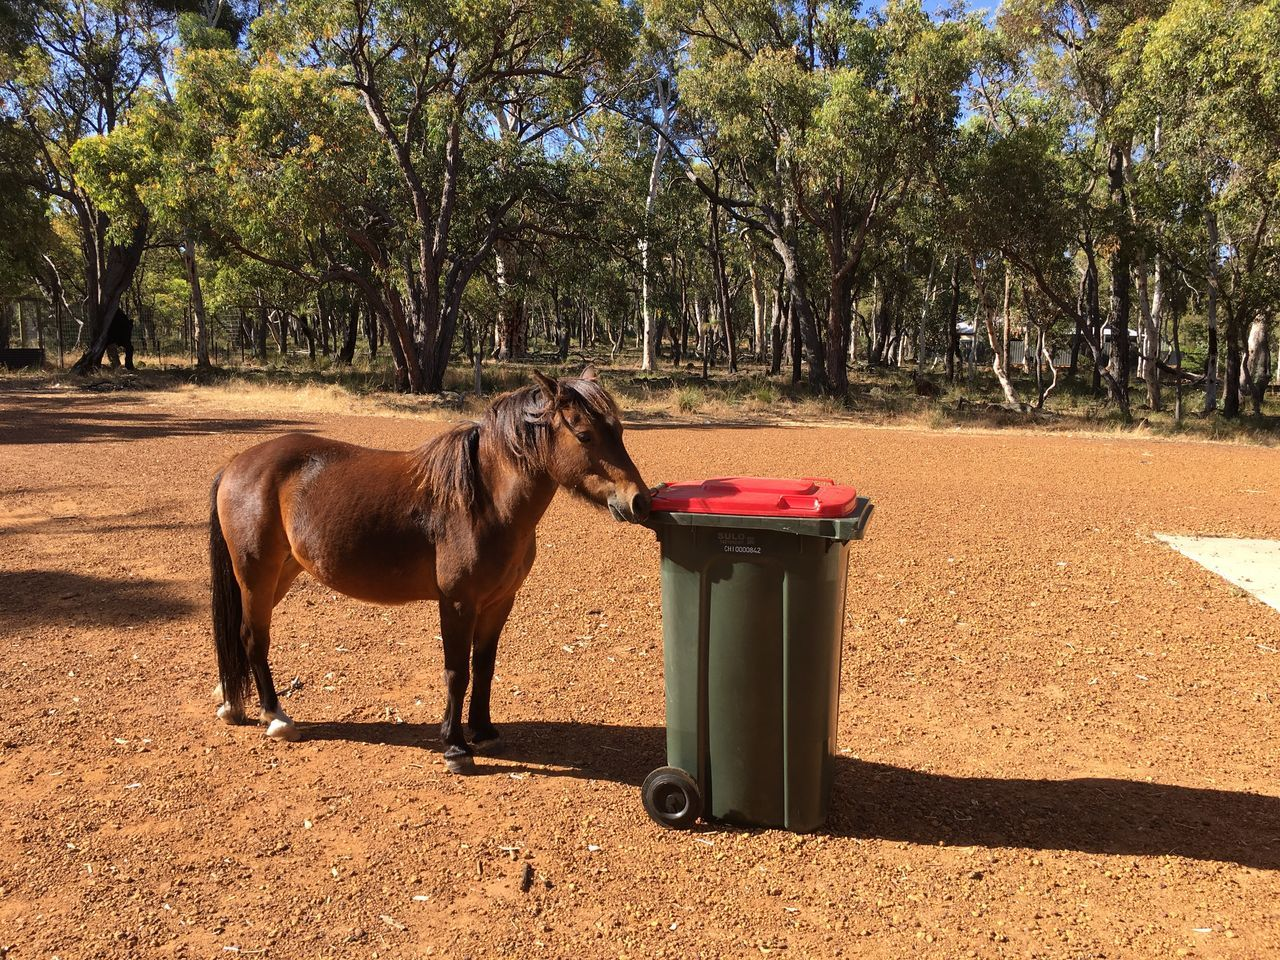 Abstract Horse Animal Themes Rubbish Bin Recycle One Animal Nature Domestic Animals Pony EyeEm Nature Photography Eyem Best Shots Nature_collection Nature Natural Pet Bin Smell Dinner Refuse Countryside Farm Abstract Eyem Nature Lovers  Abstract Photography